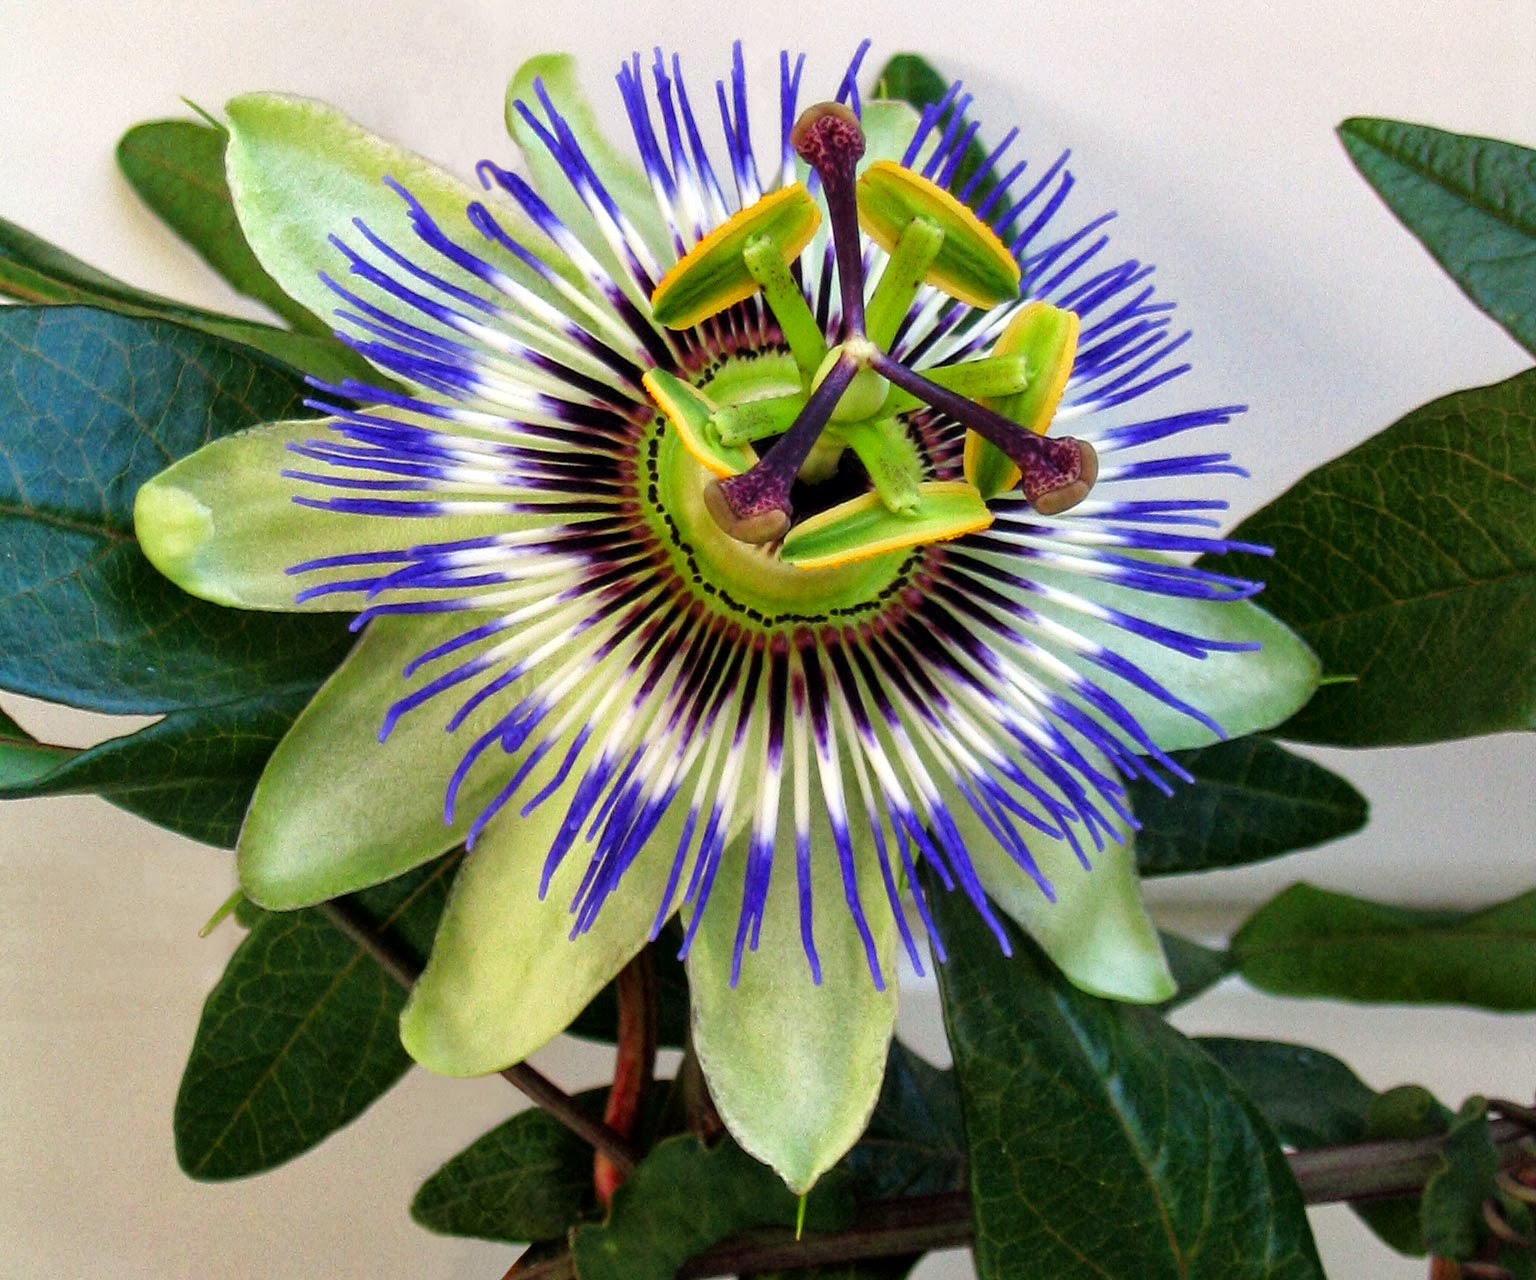 HOW TO GROW HARDY PASSION FLOWERS FROM SEED The Garden of